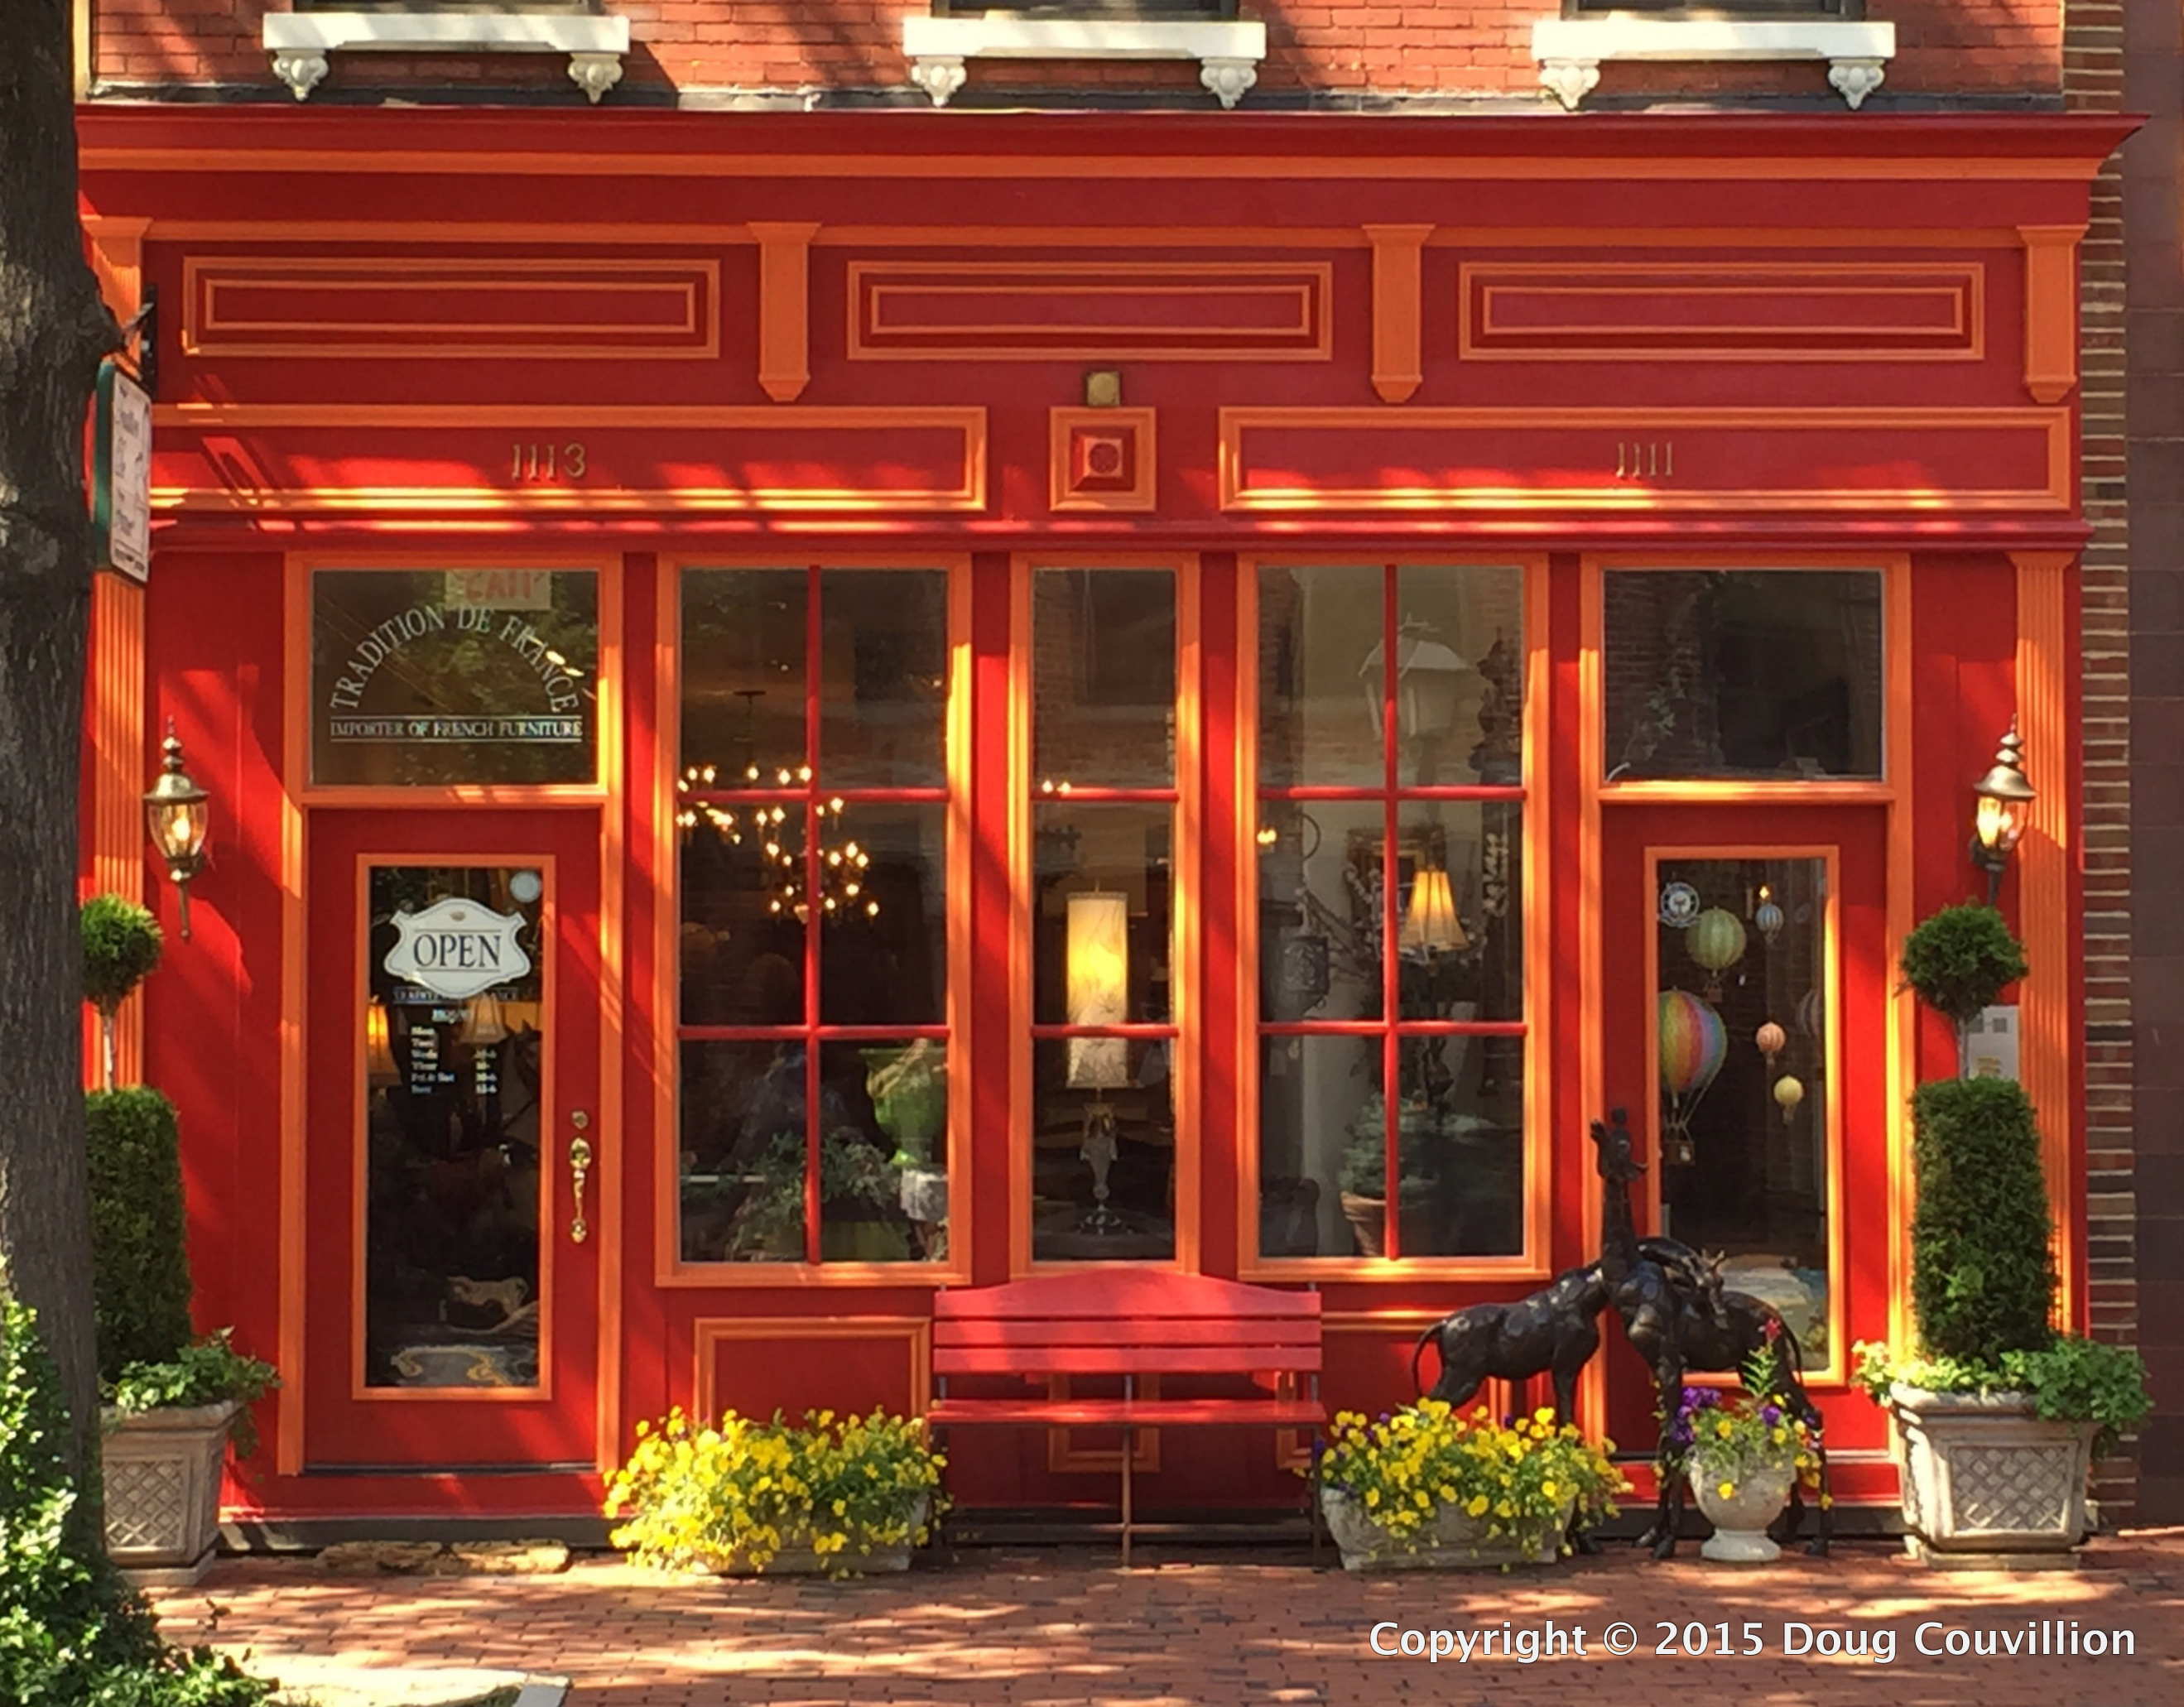 photograph of Traditions De France store in Old Town Alexandria, VA